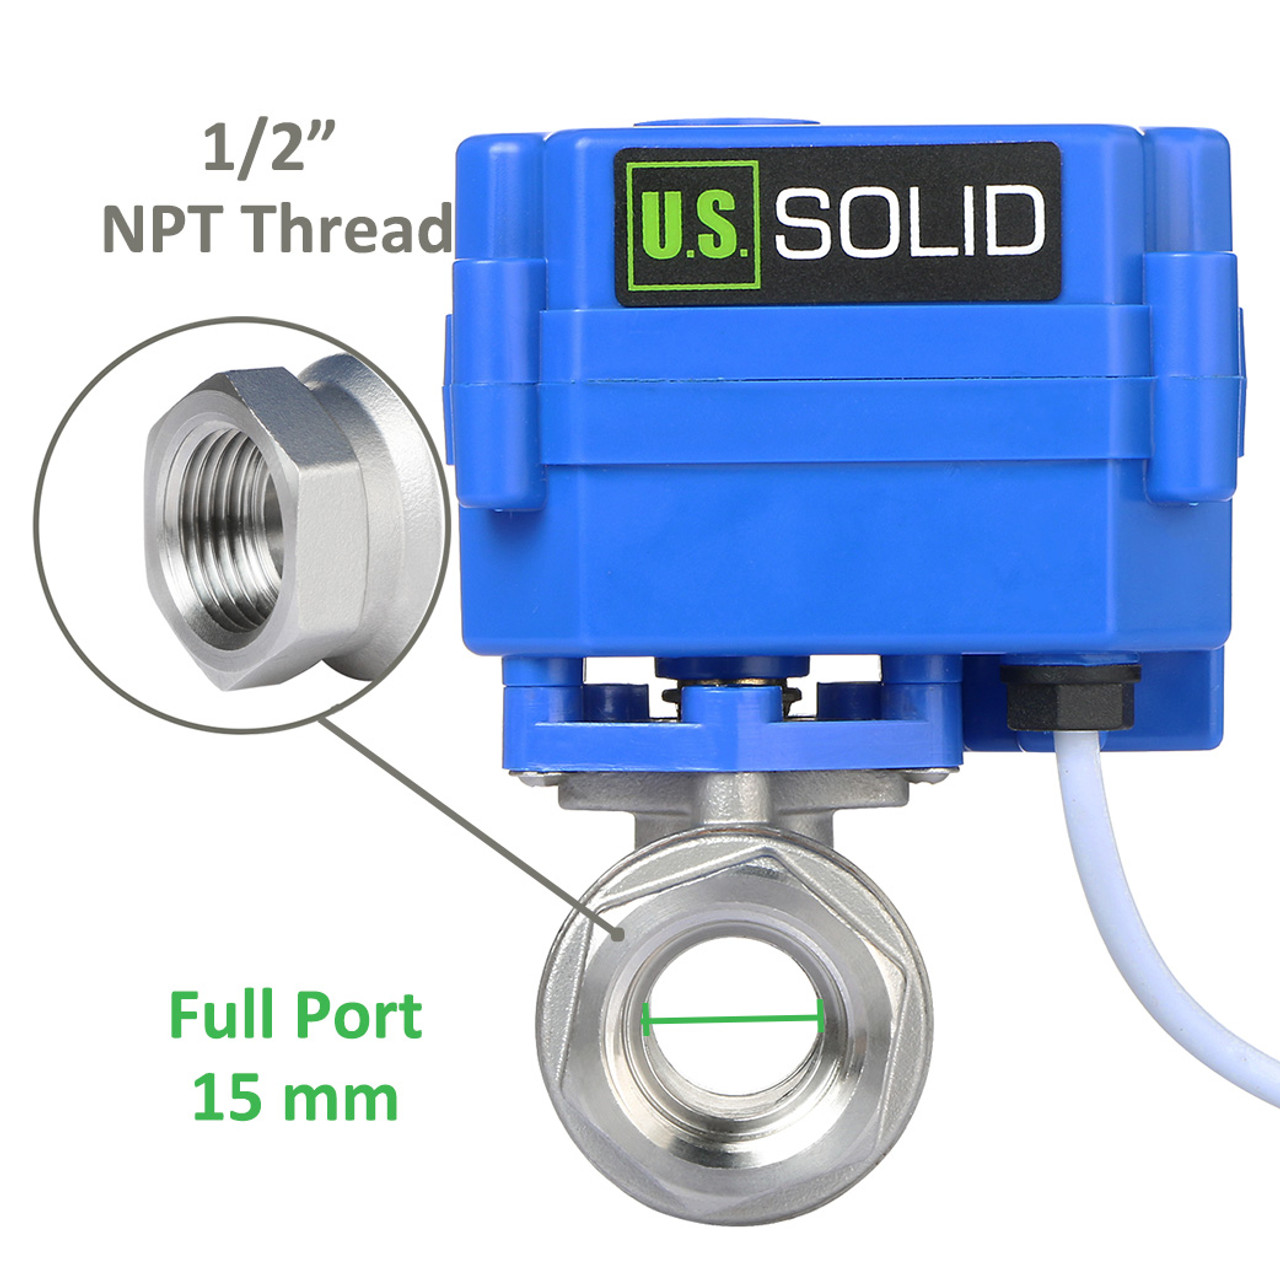 """U.S. Solid Motorized Ball Valve- 1/2"""" Stainless Steel Electrical Ball Valve with Full Port, 9-24 V AC/DC, 2 Wire Auto Return, Normally Open"""